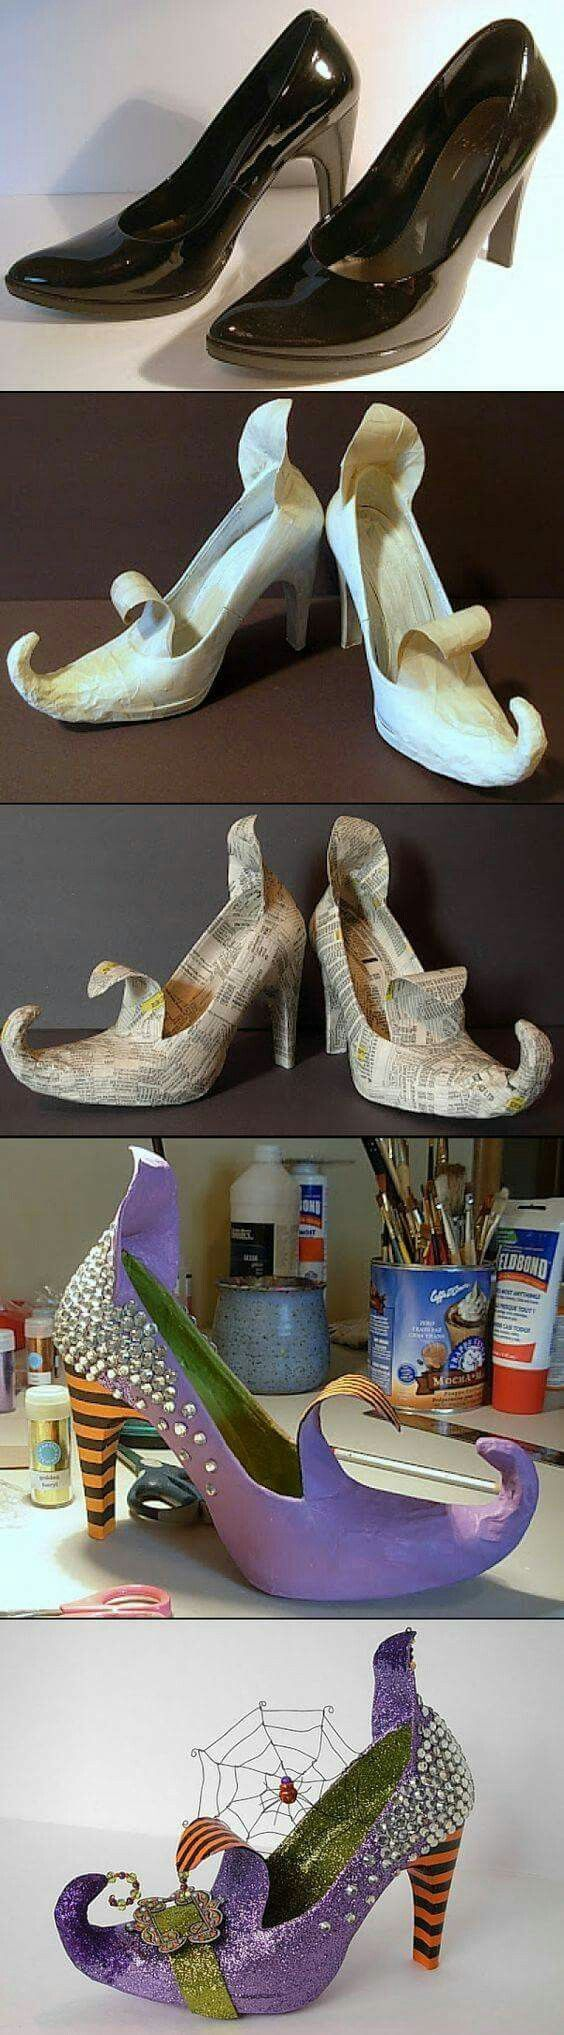 Halloween shoes decorations diy: